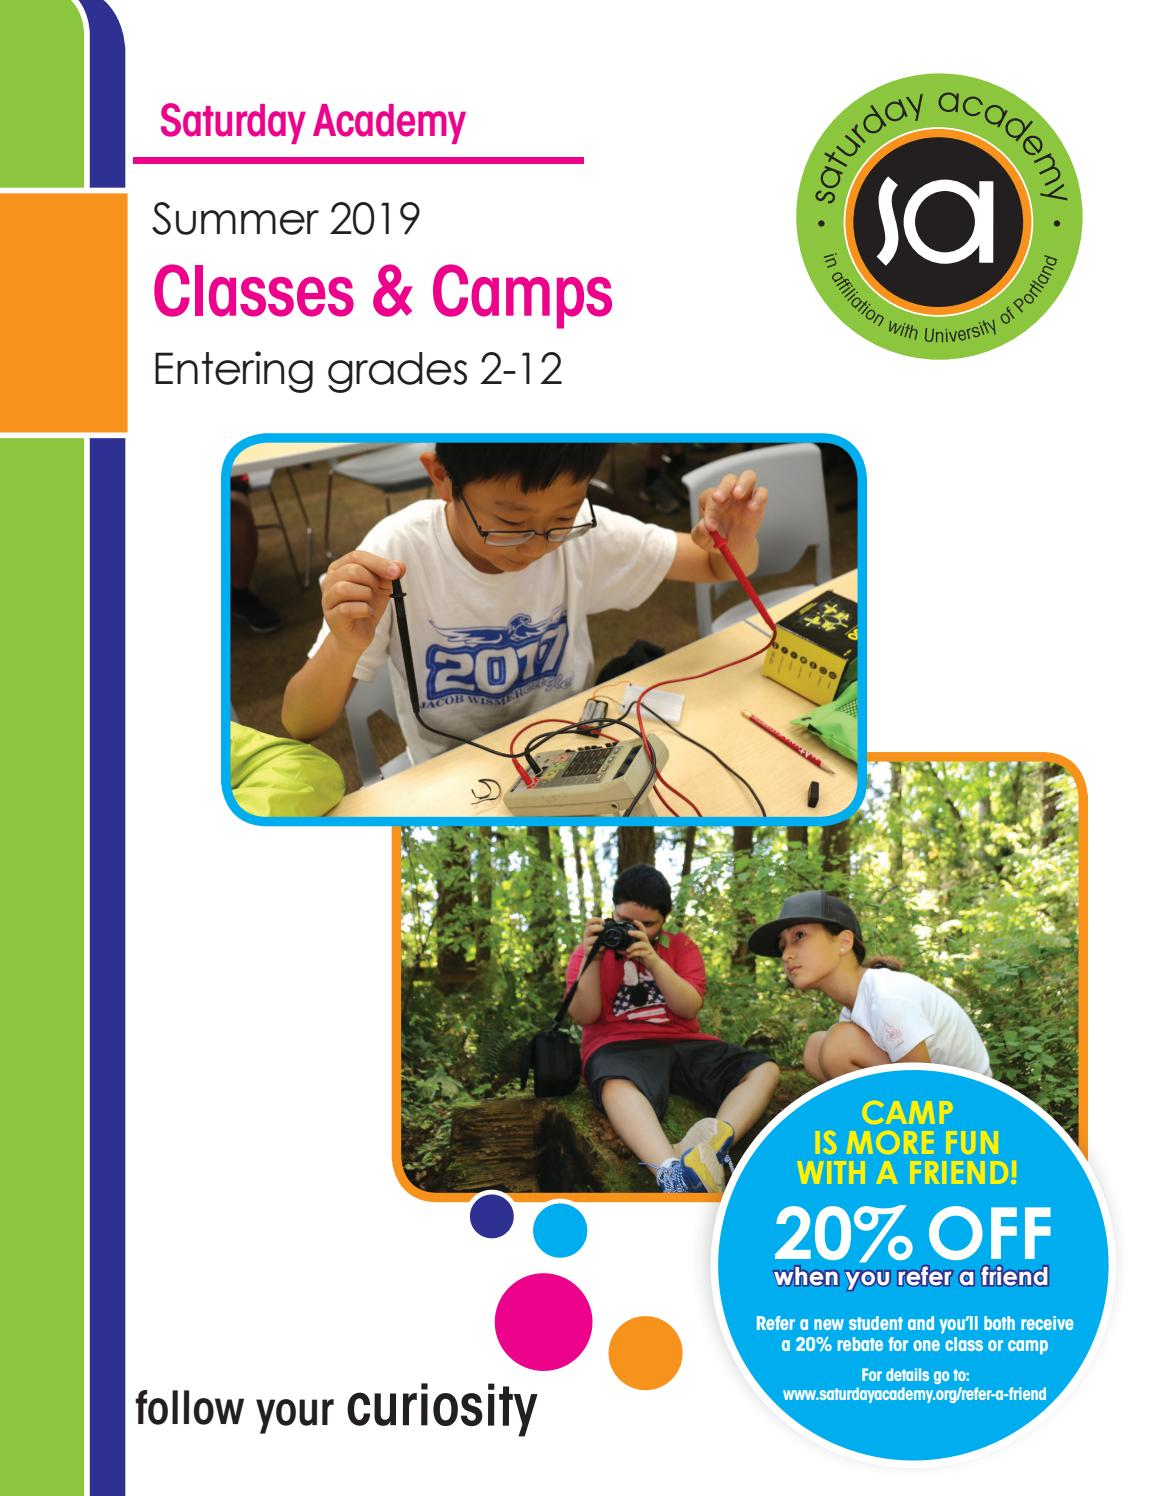 Saturday Academy Summer 2019 Classes & Camps Catalog by